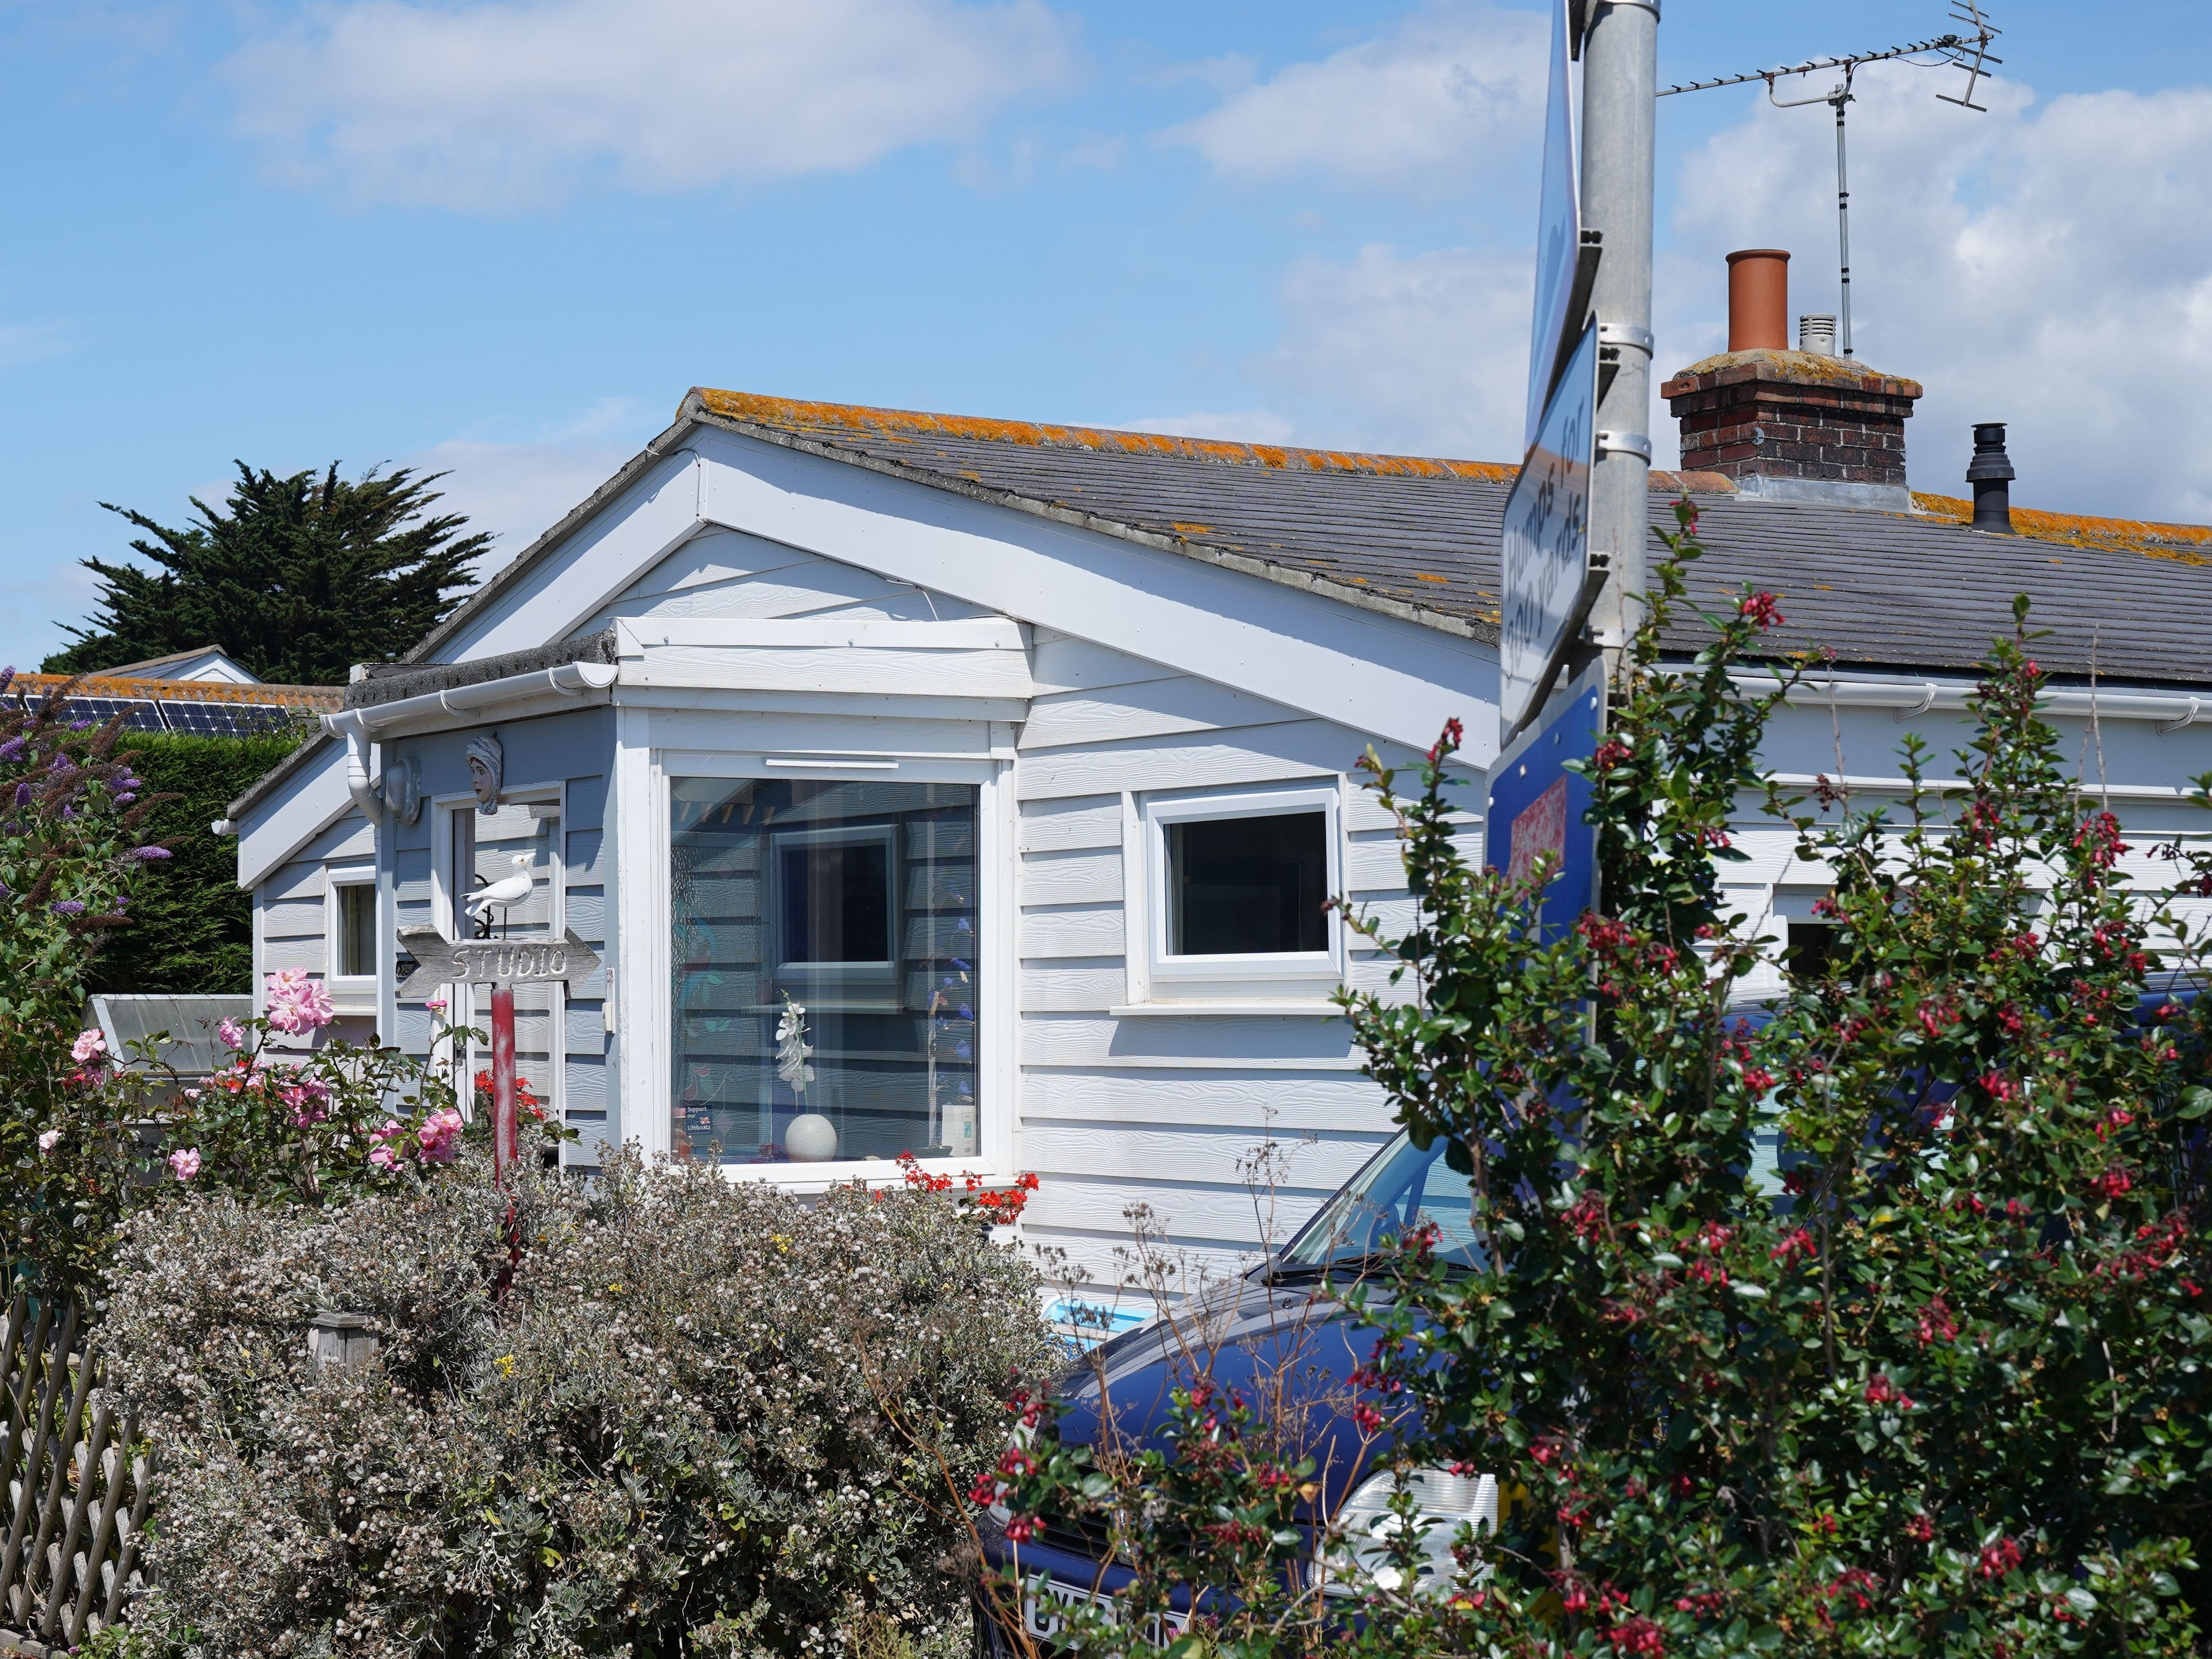 Stewartson Railway Carriage Cottage where Prime minister Churchill held his Mulberry Harbour meeting